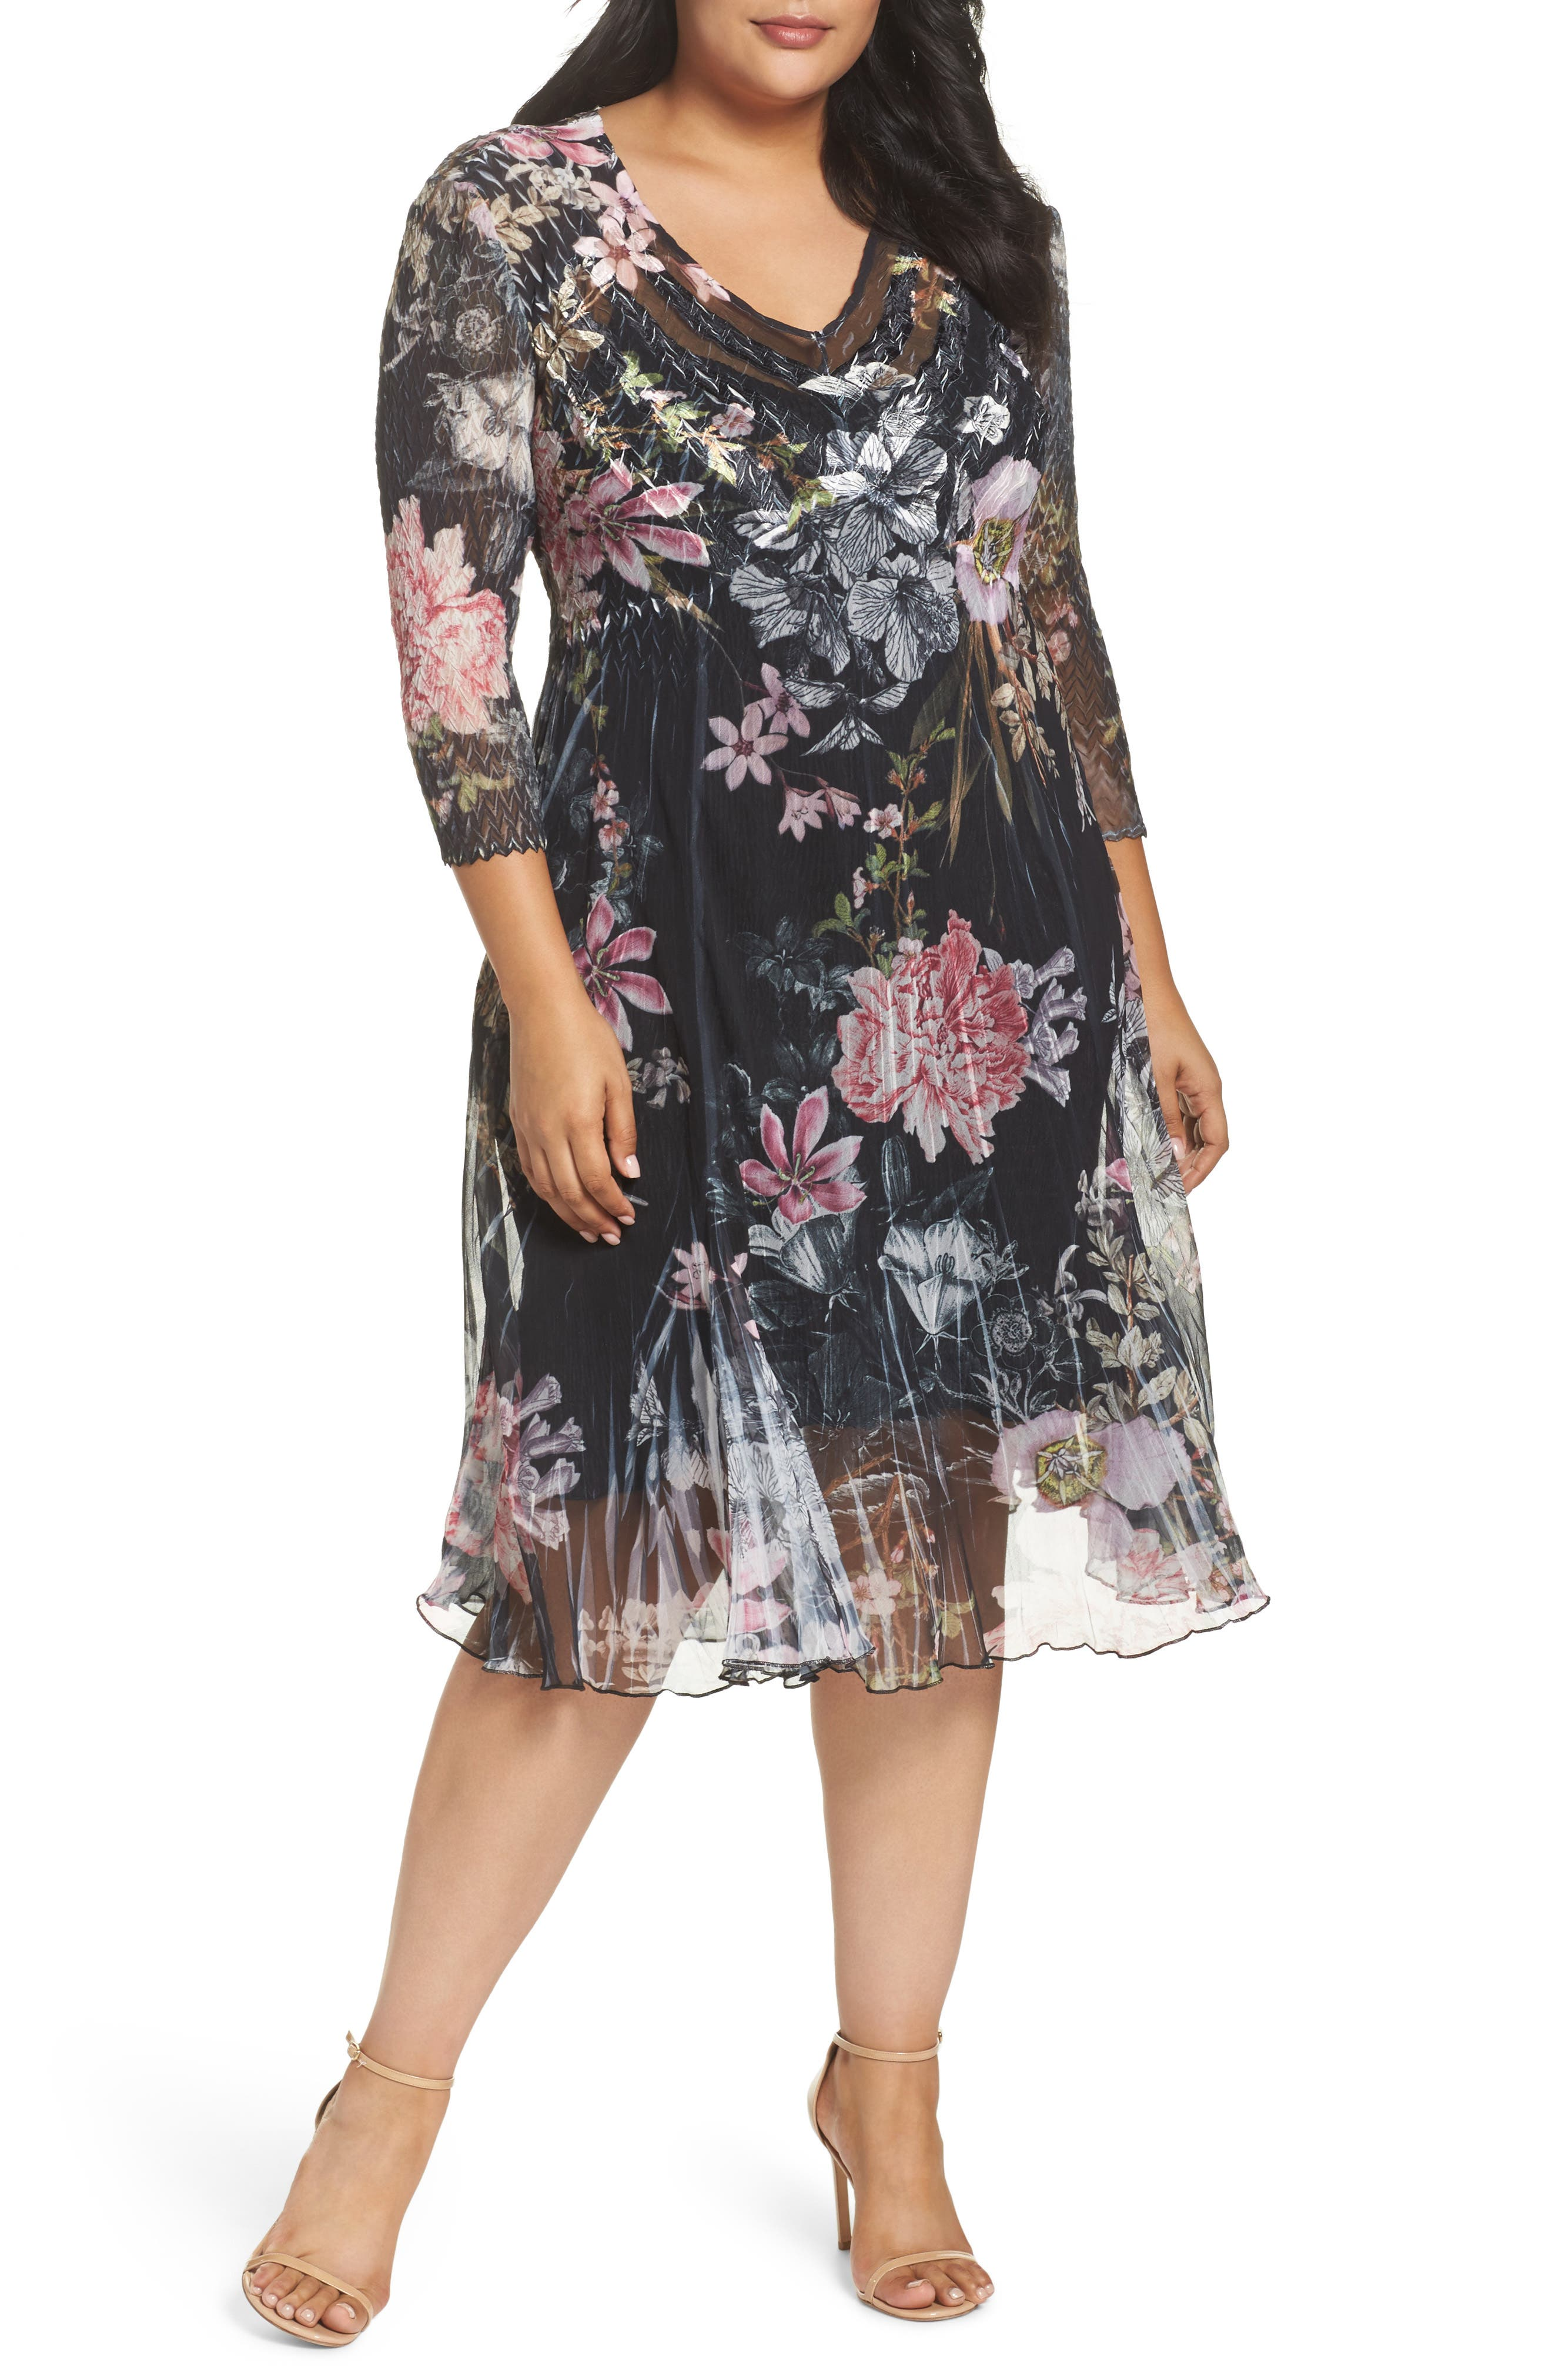 Kamarov Floral Charmeuse & Chiffon Floral A-Line Dress,                             Main thumbnail 1, color,                             Moon Flower